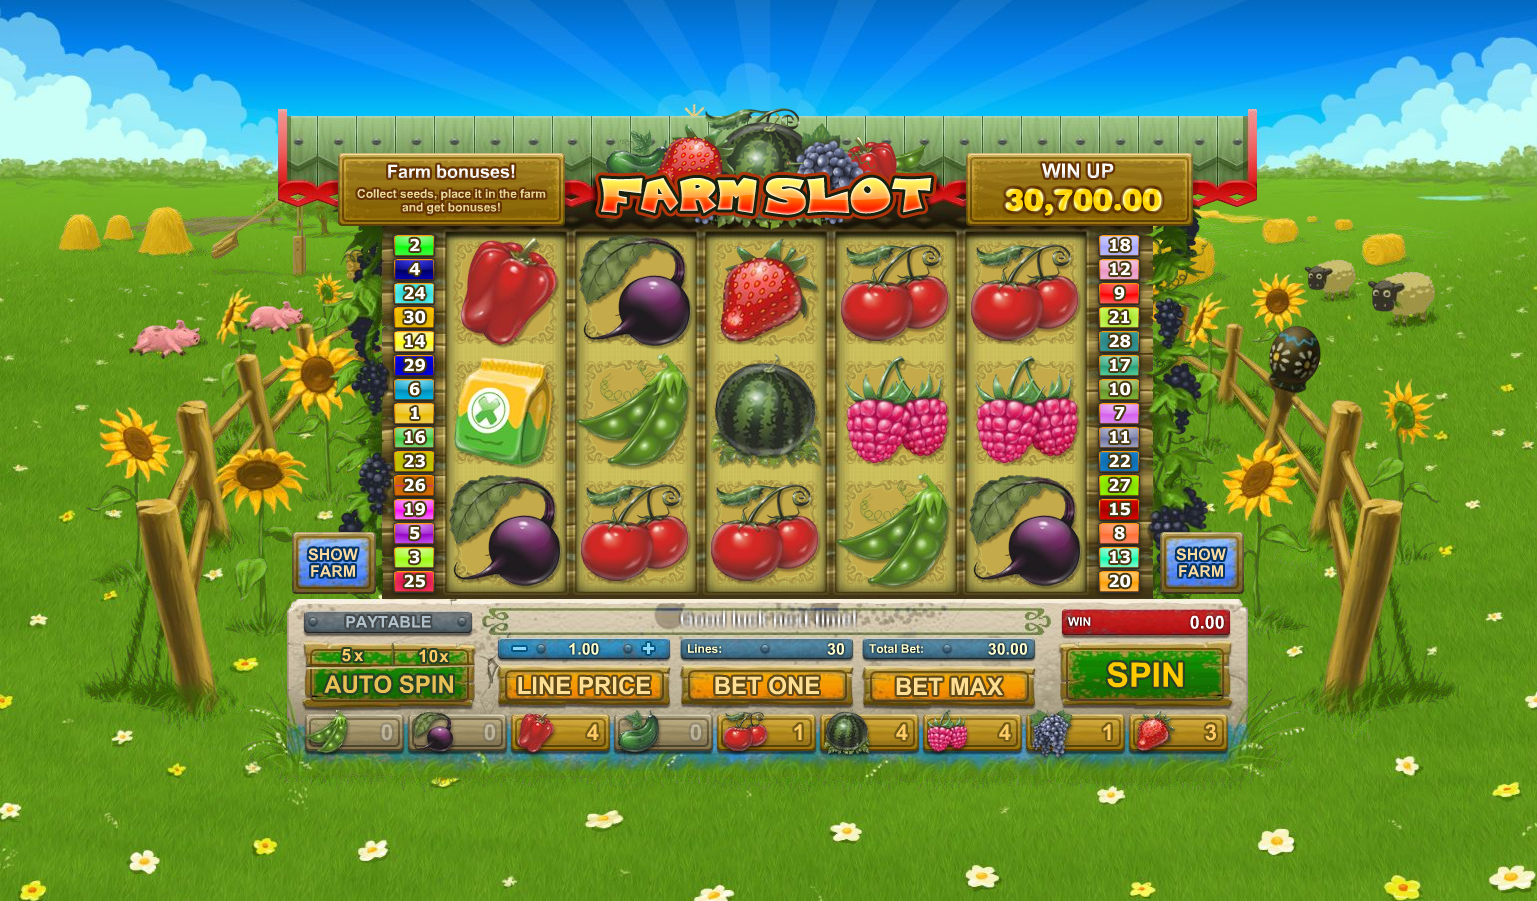 CTXM to launch Farm Slots at ICE Totally Gaming